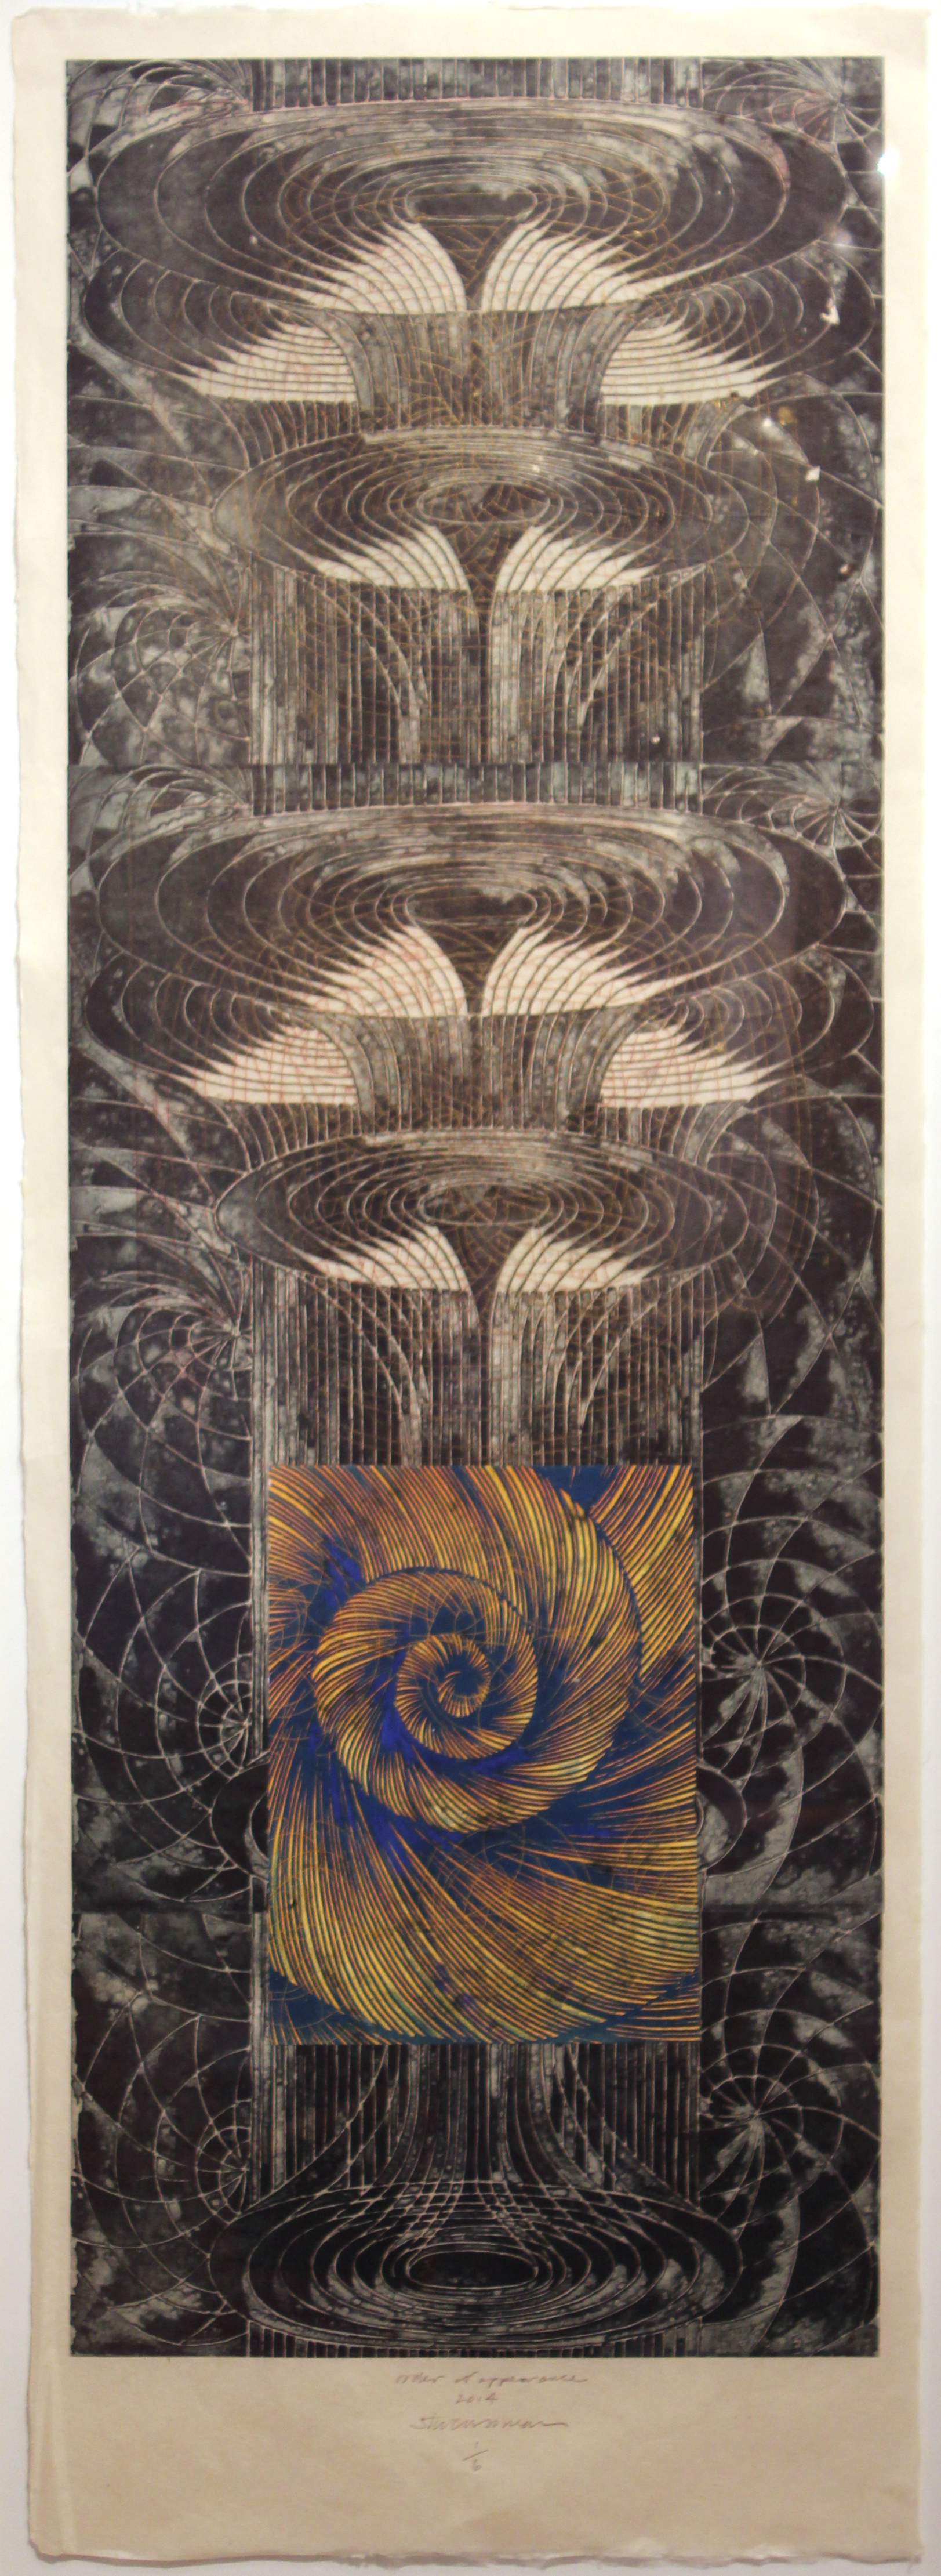 """Steven Sorman, """"order of appearance,"""" 2014  photopolymer intaglio, etching, collage on Japan papers, 1/6  55 1/2"""" x 21"""""""